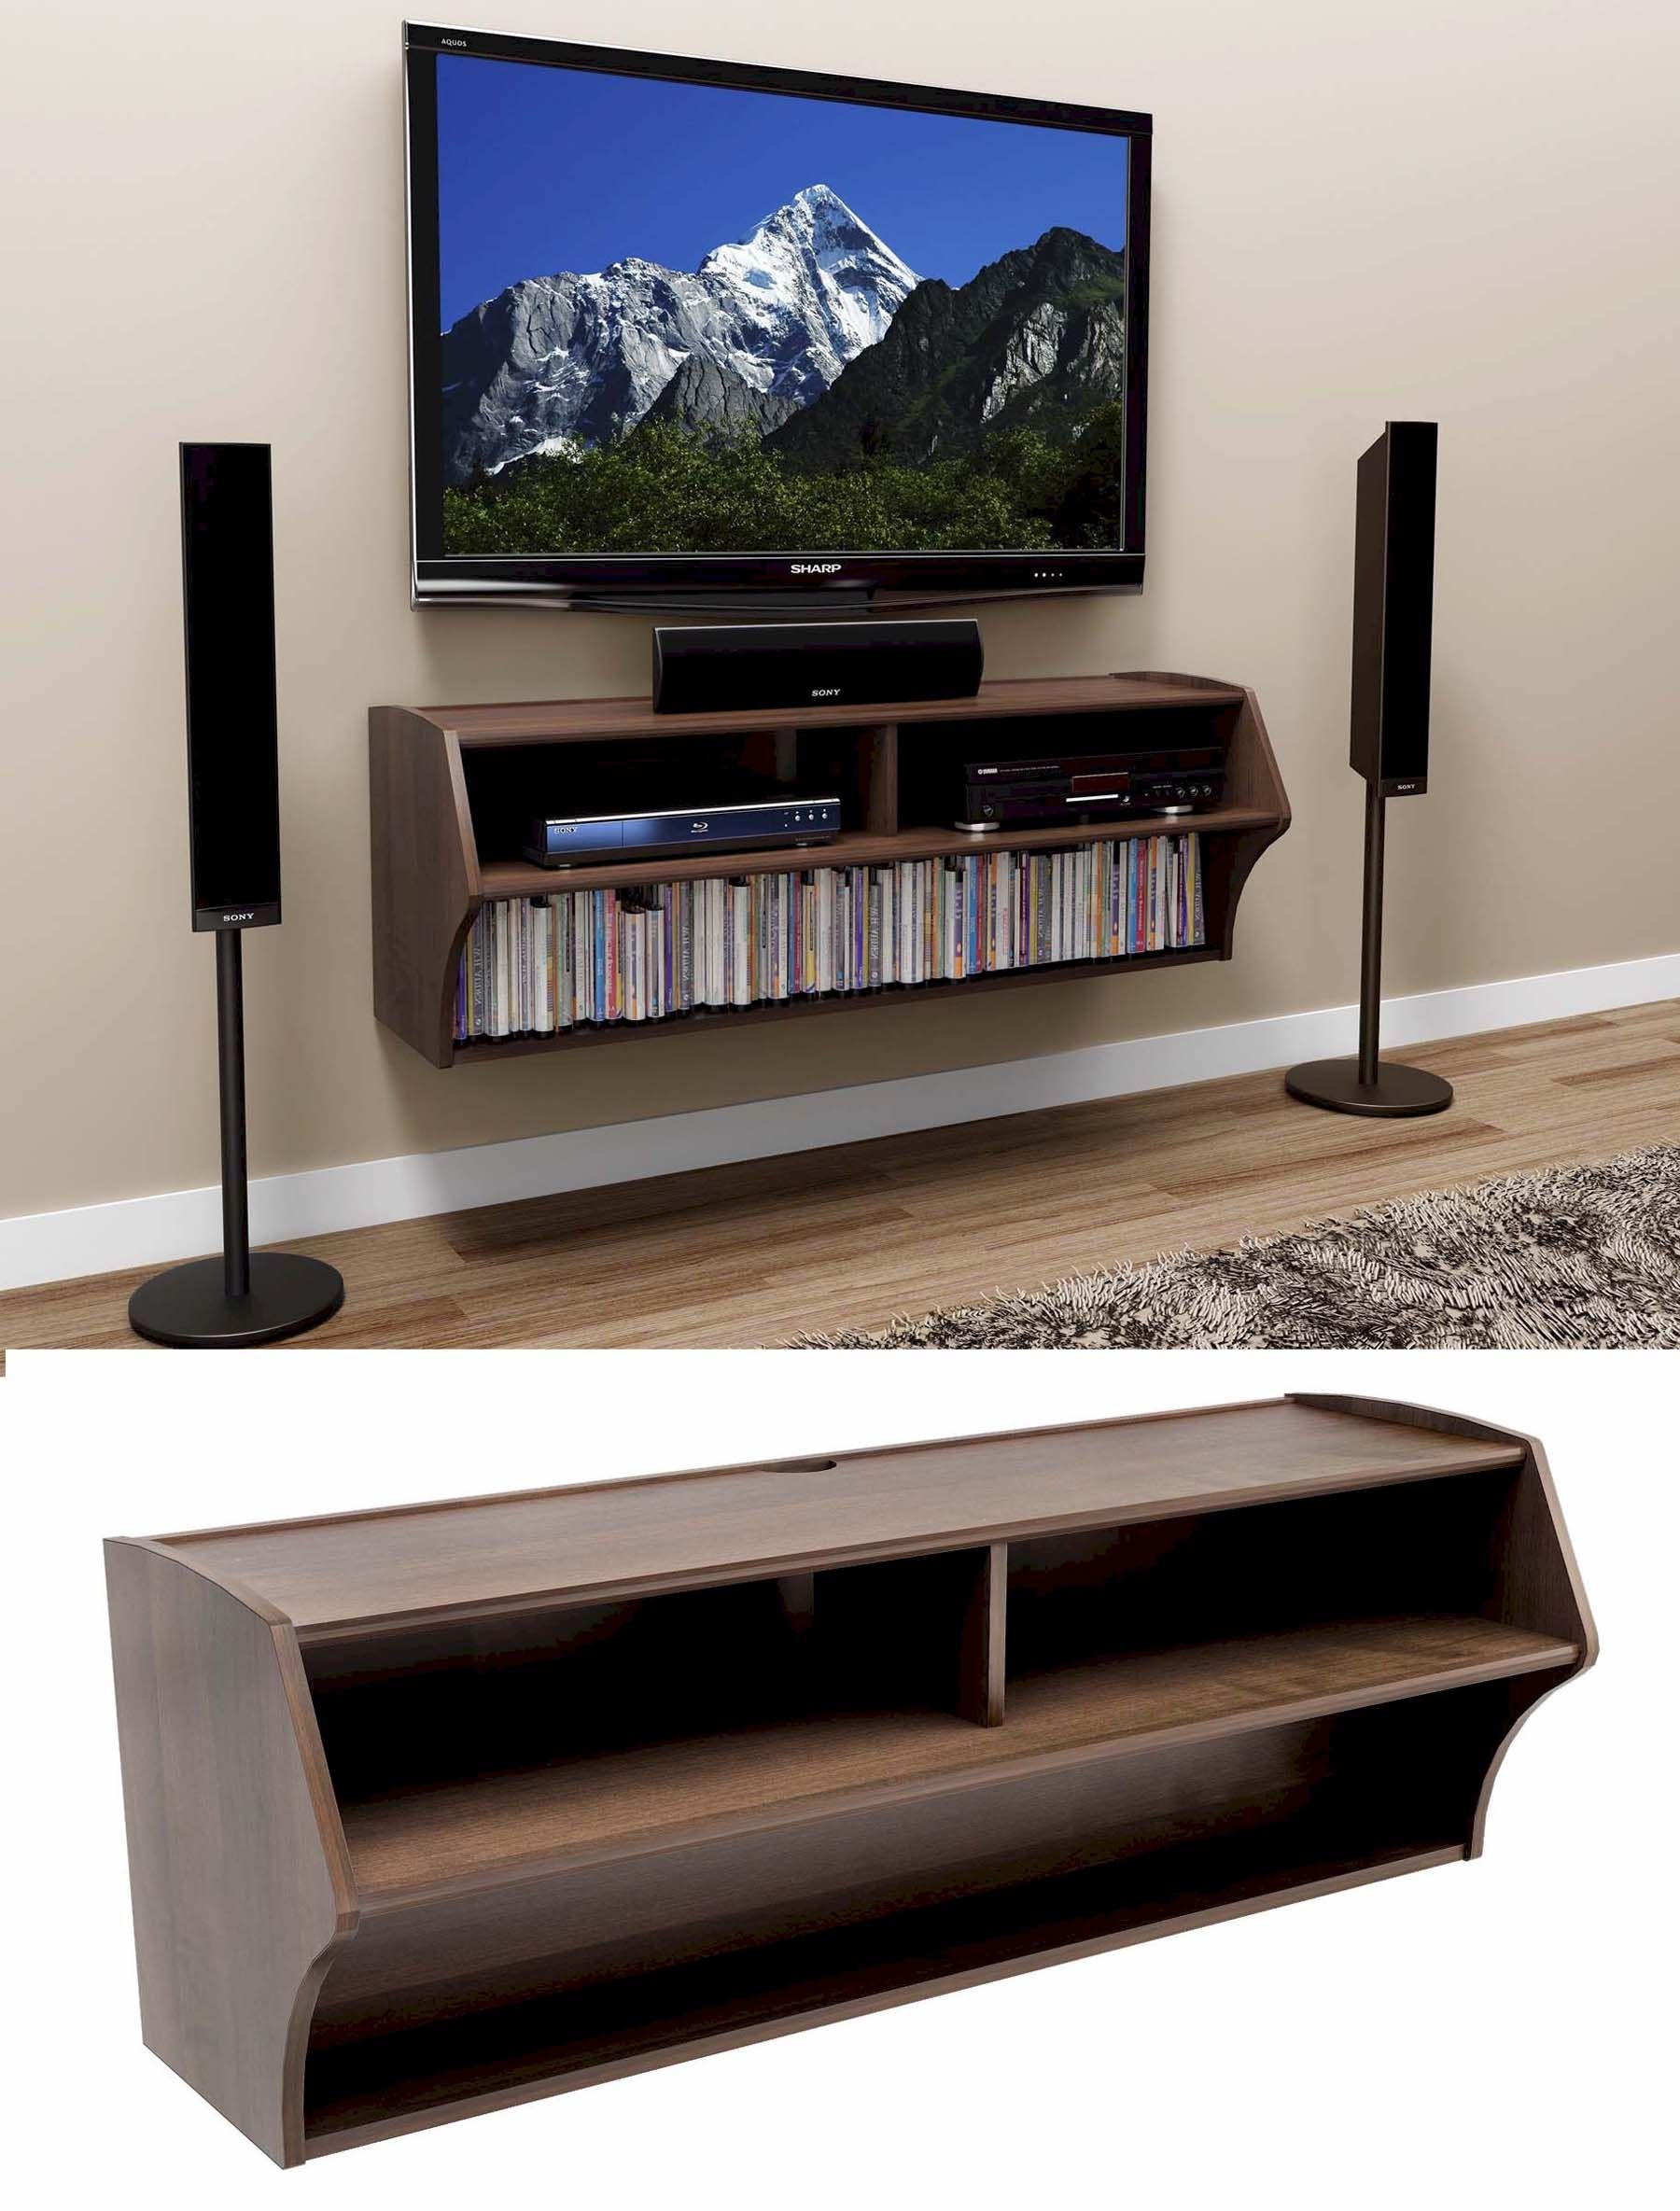 Wall Mounted Tv Stand With Shelf Tv Wall Mount Ideas In 2018